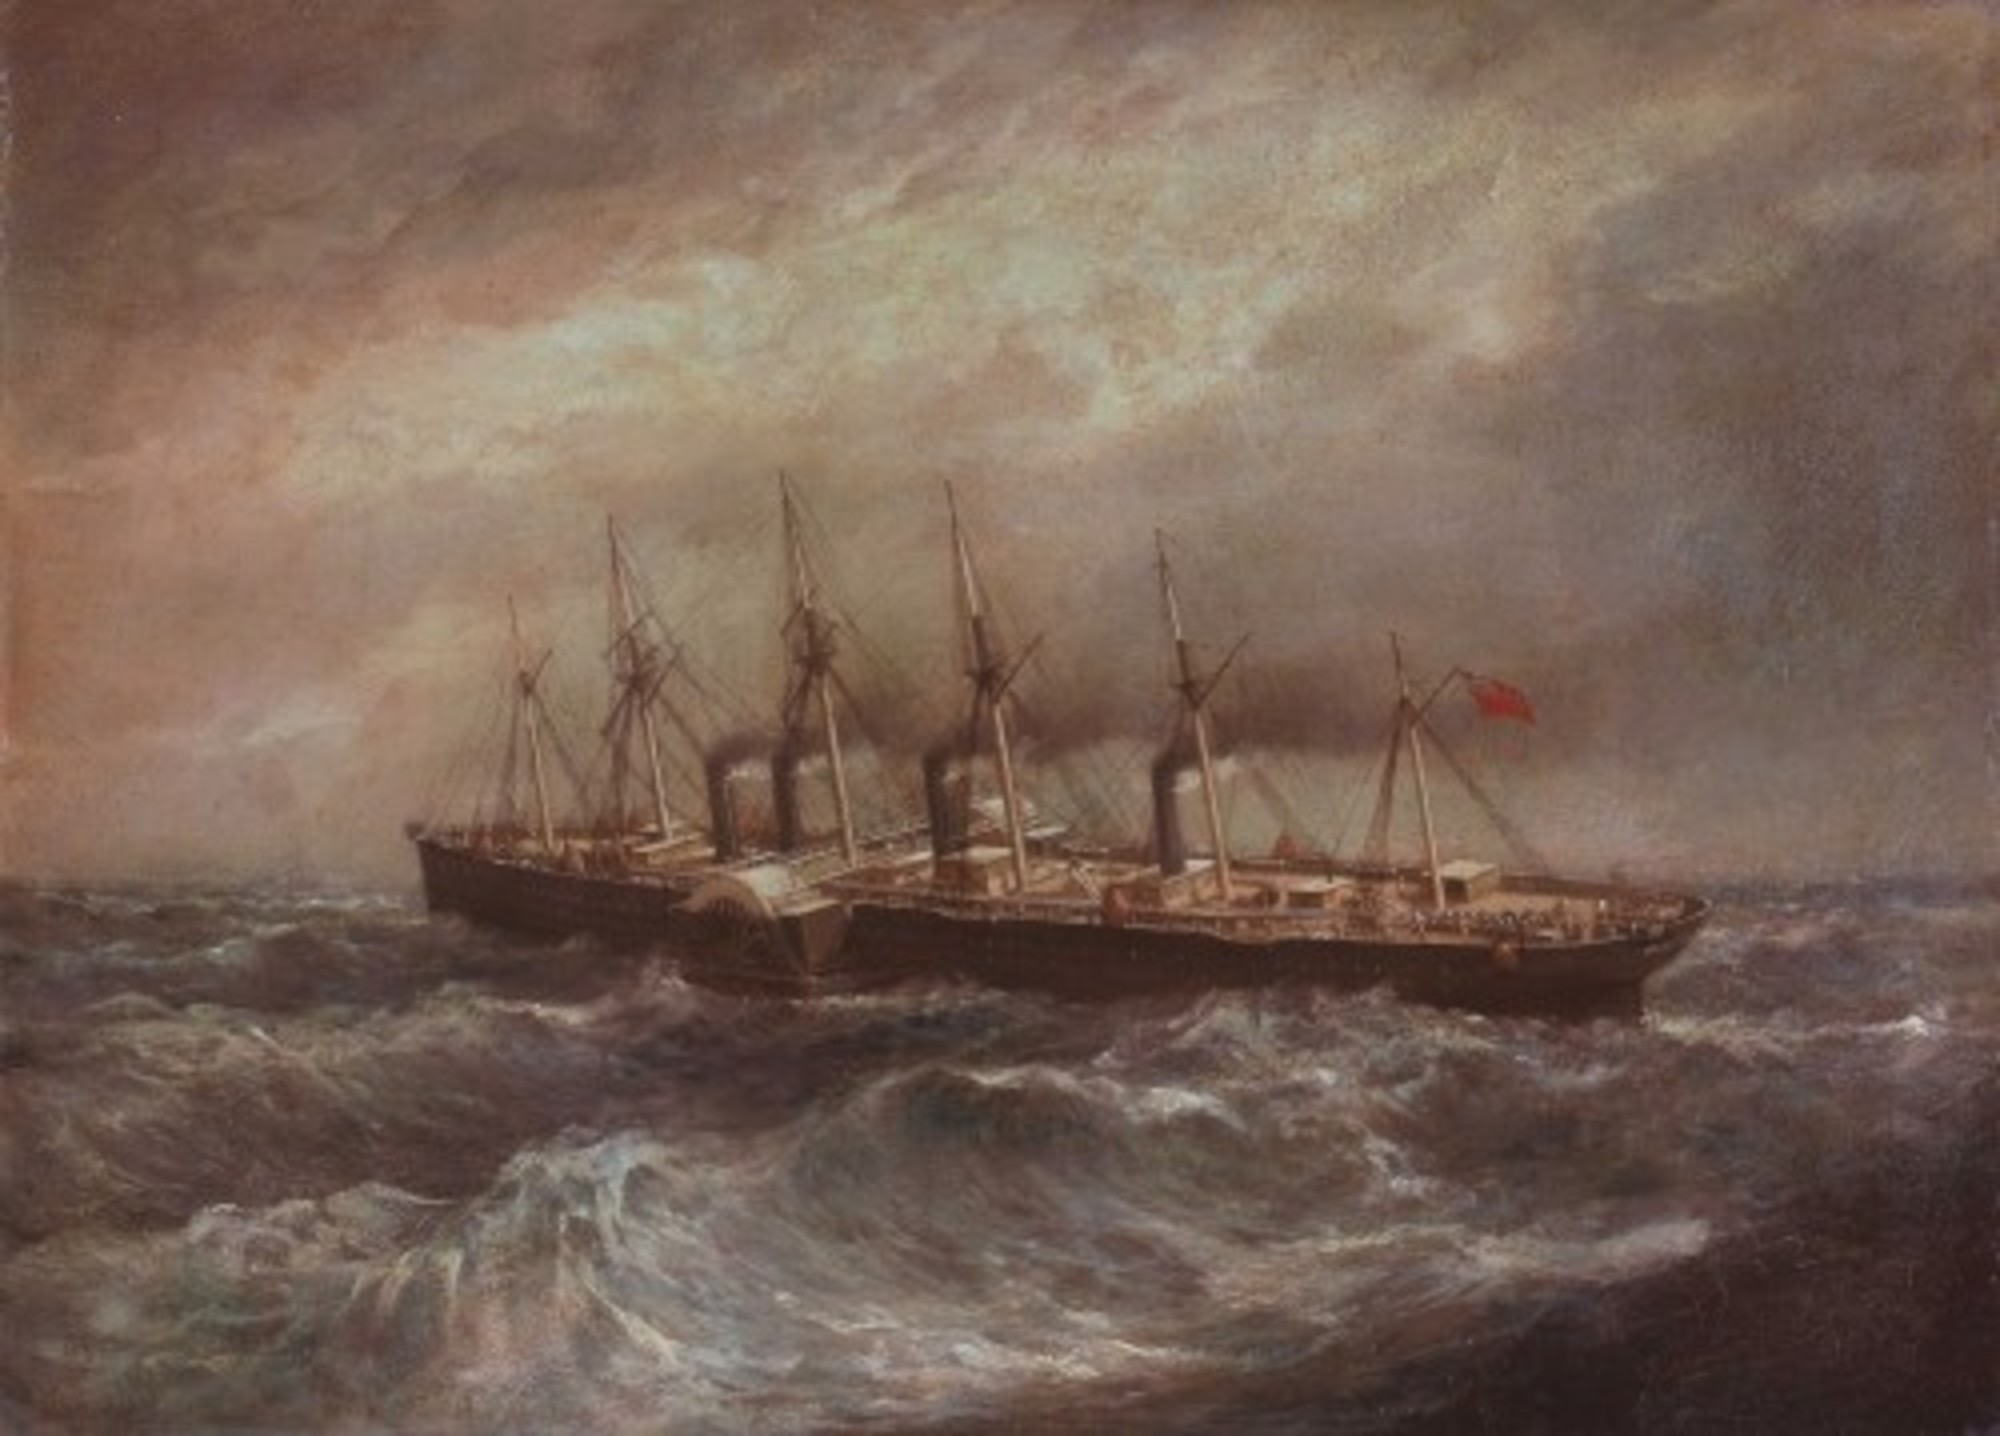 The-steamship-Great-Eastern-laying-the-first-successful-Atlantic-cable-RMG-BHC3380.jpg